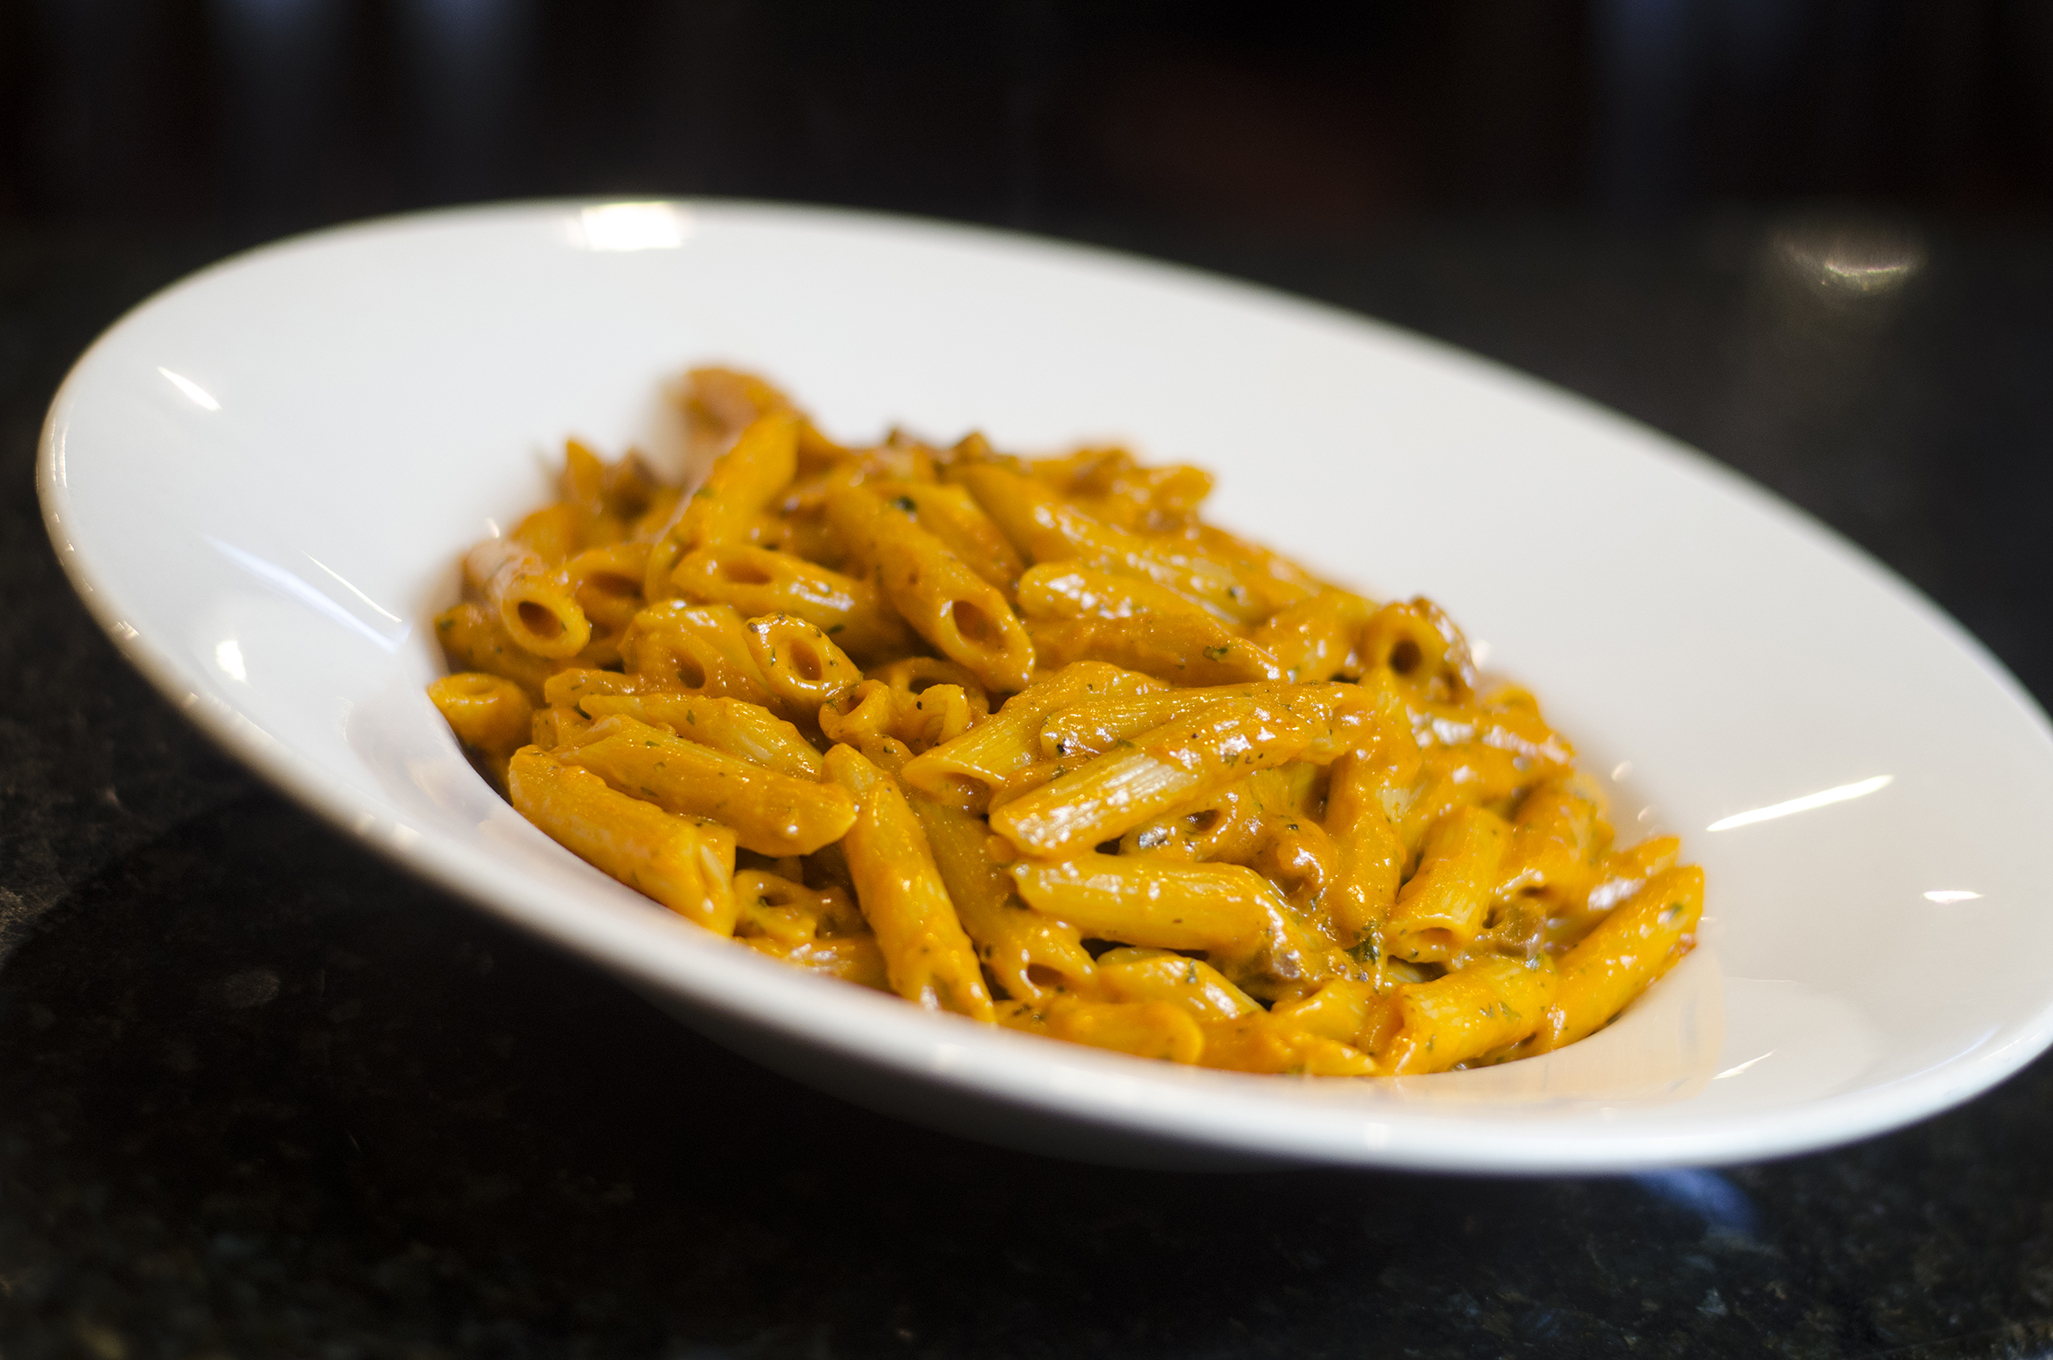 Penne alla Vodka from Enzo's in Windsor, Ontario's Via Italia.